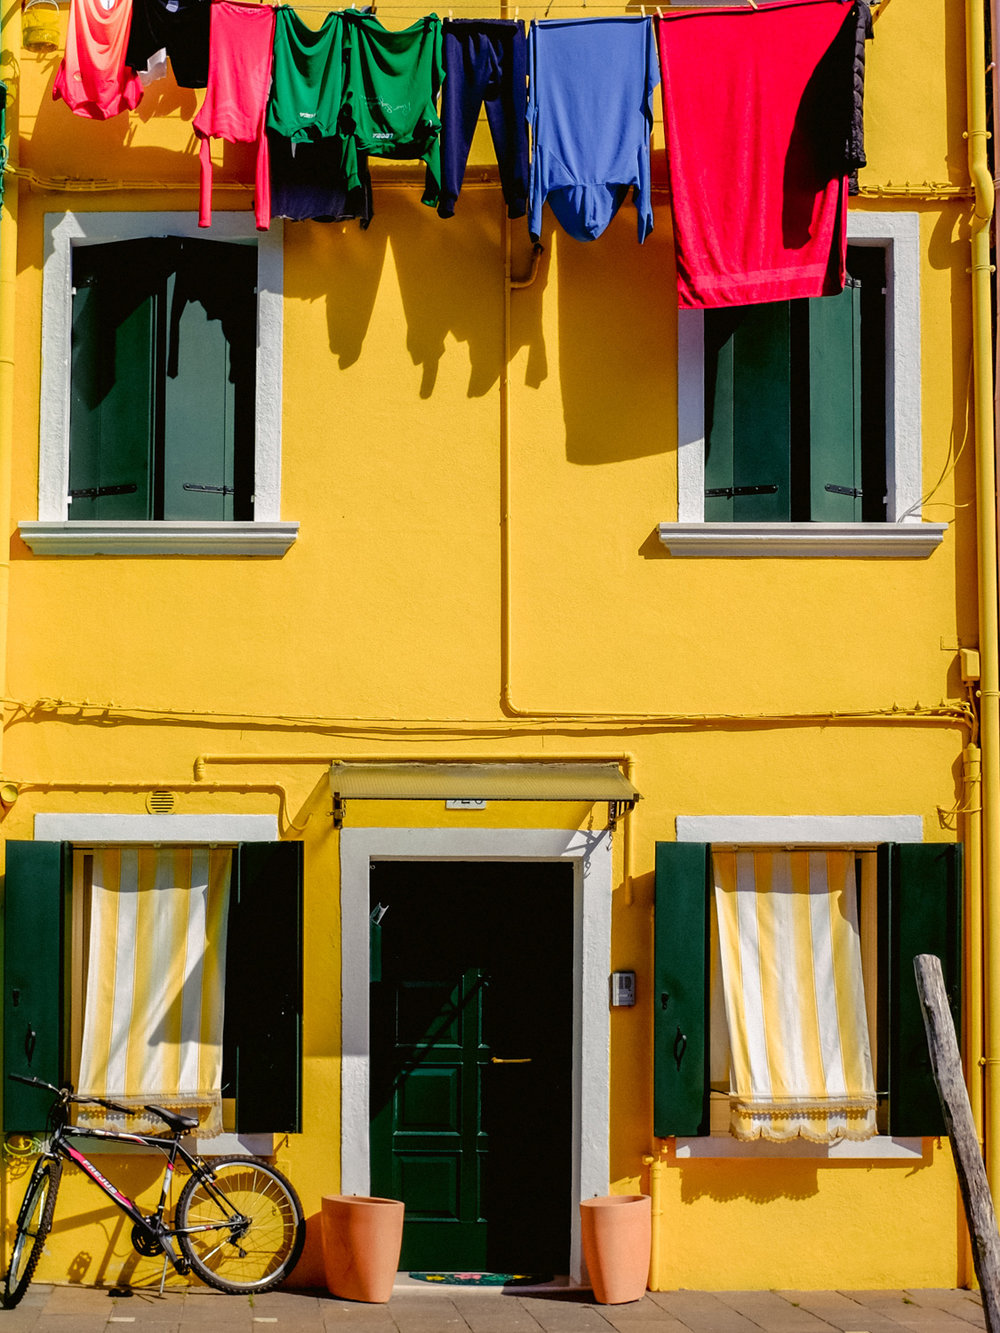 If you want to see some color on your trip to Venice, hop a water bus to the small island of Burano.